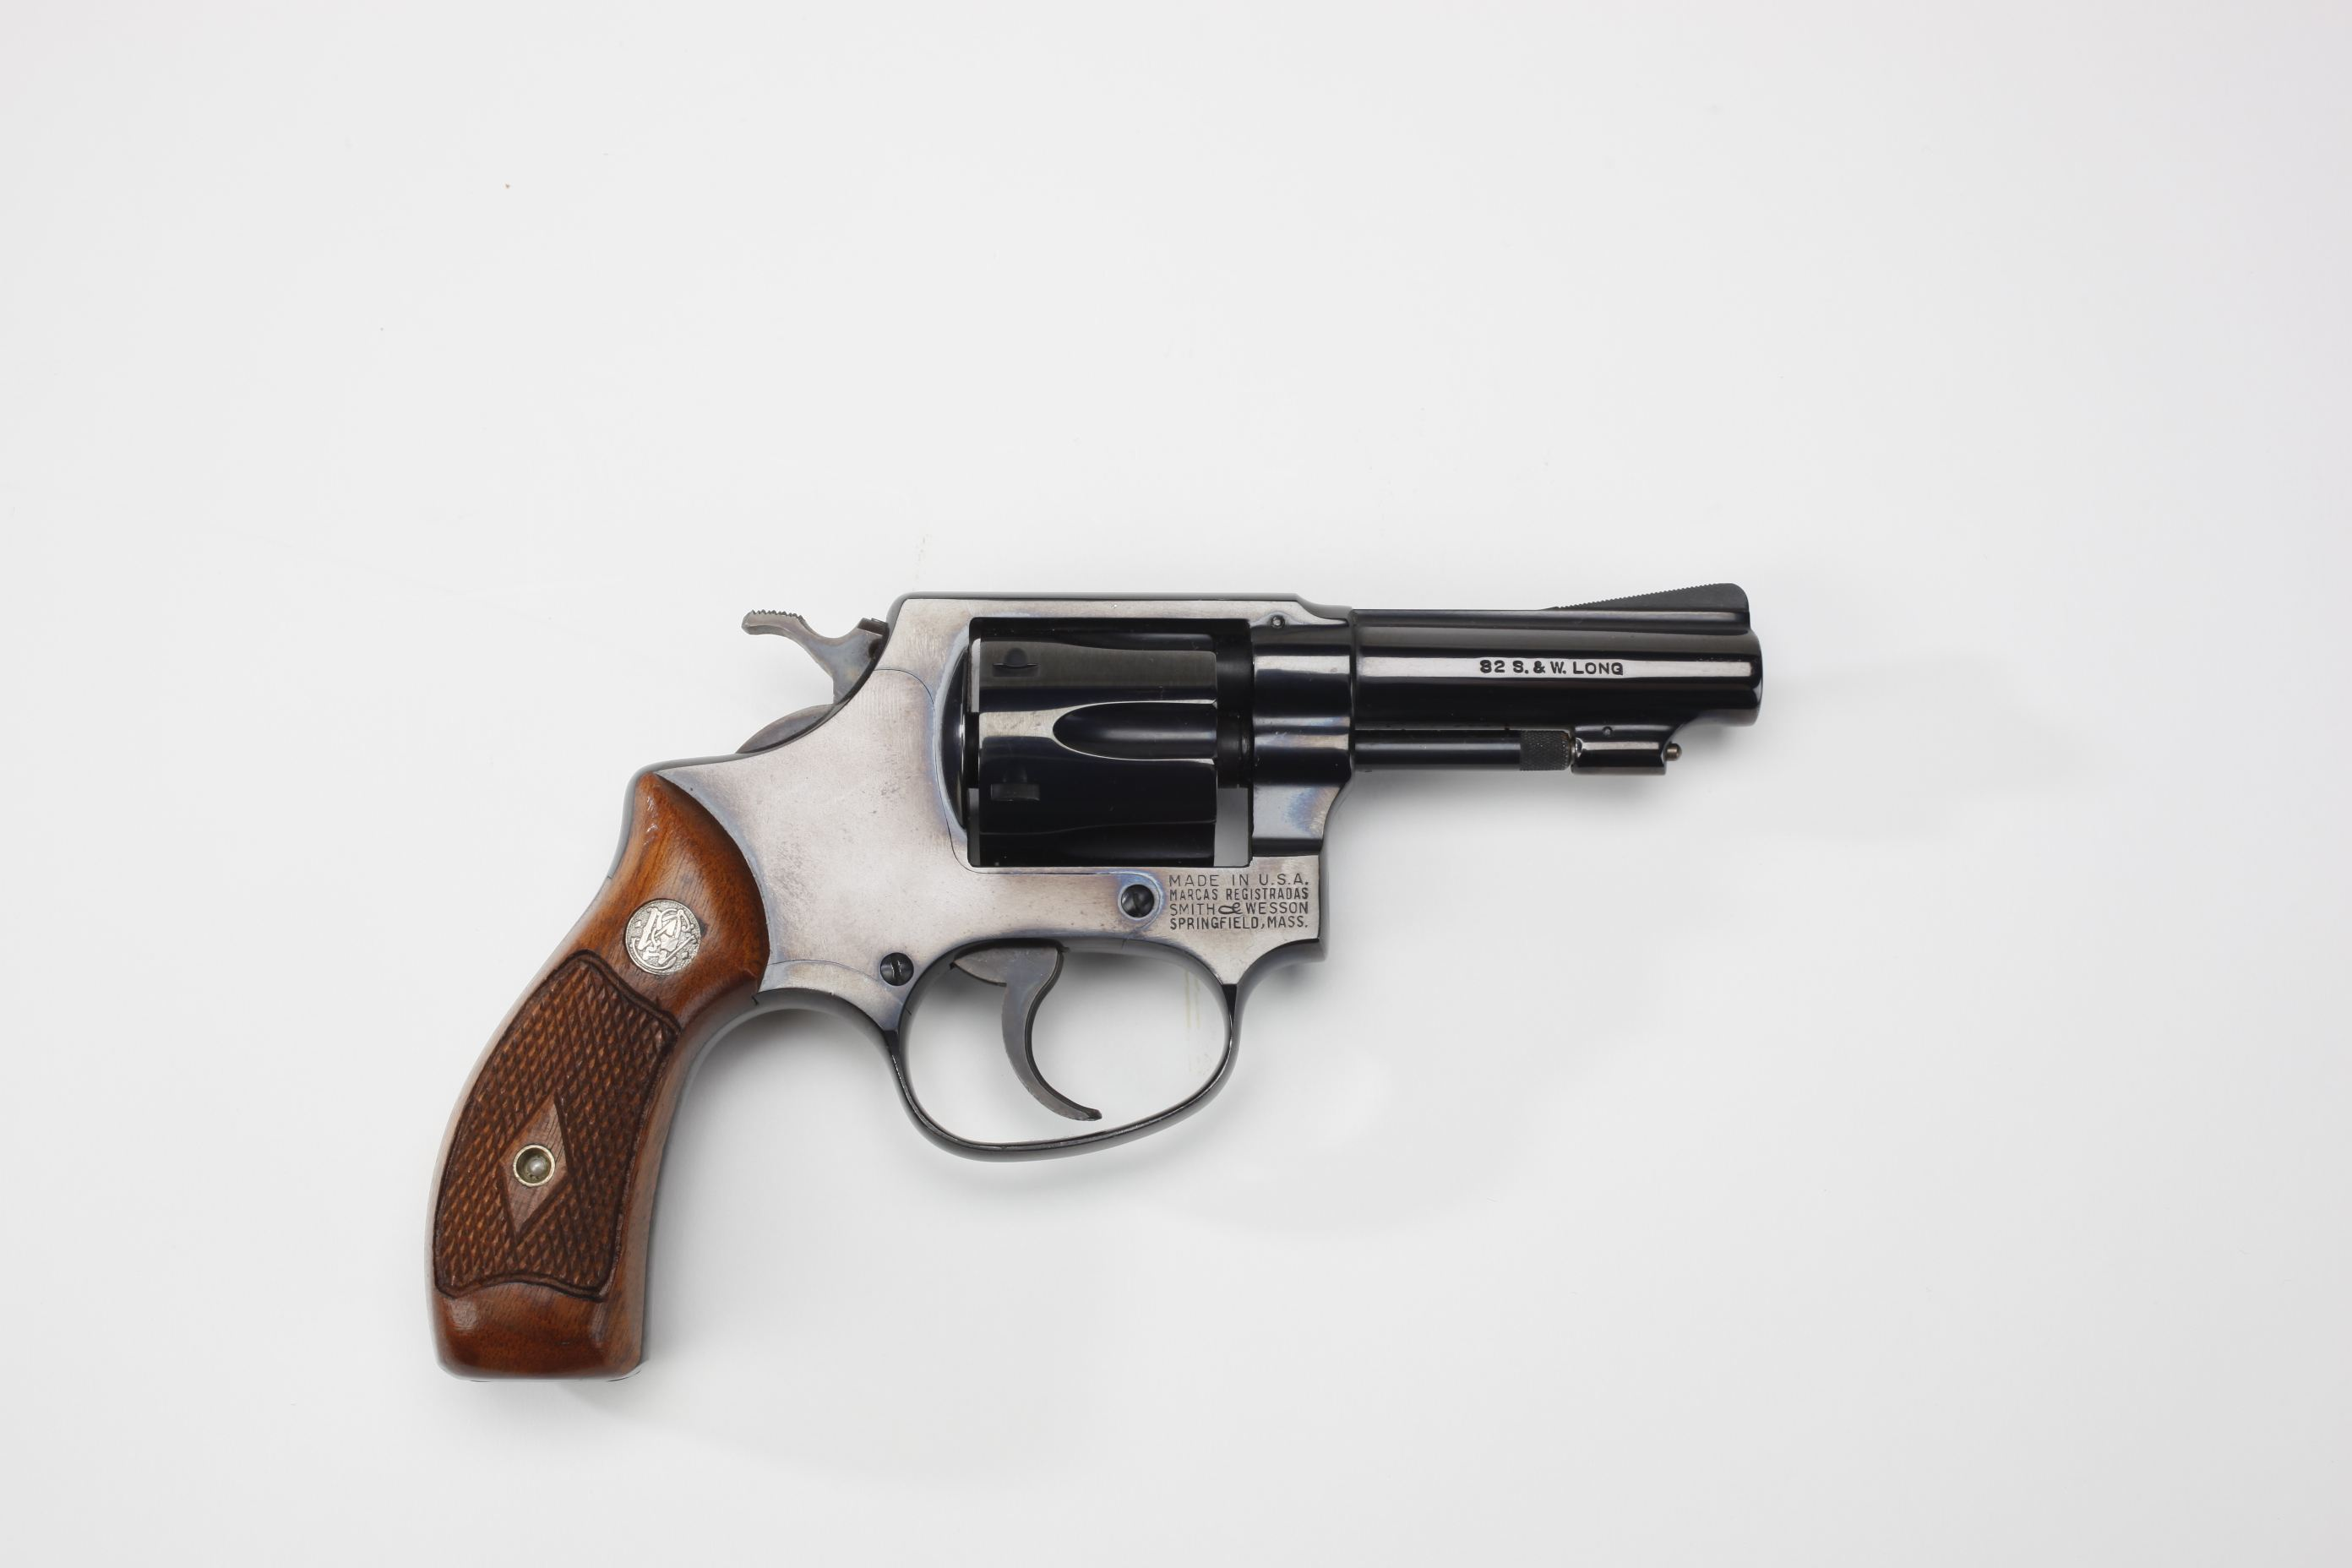 Smith & Wesson Model 30 Revolver